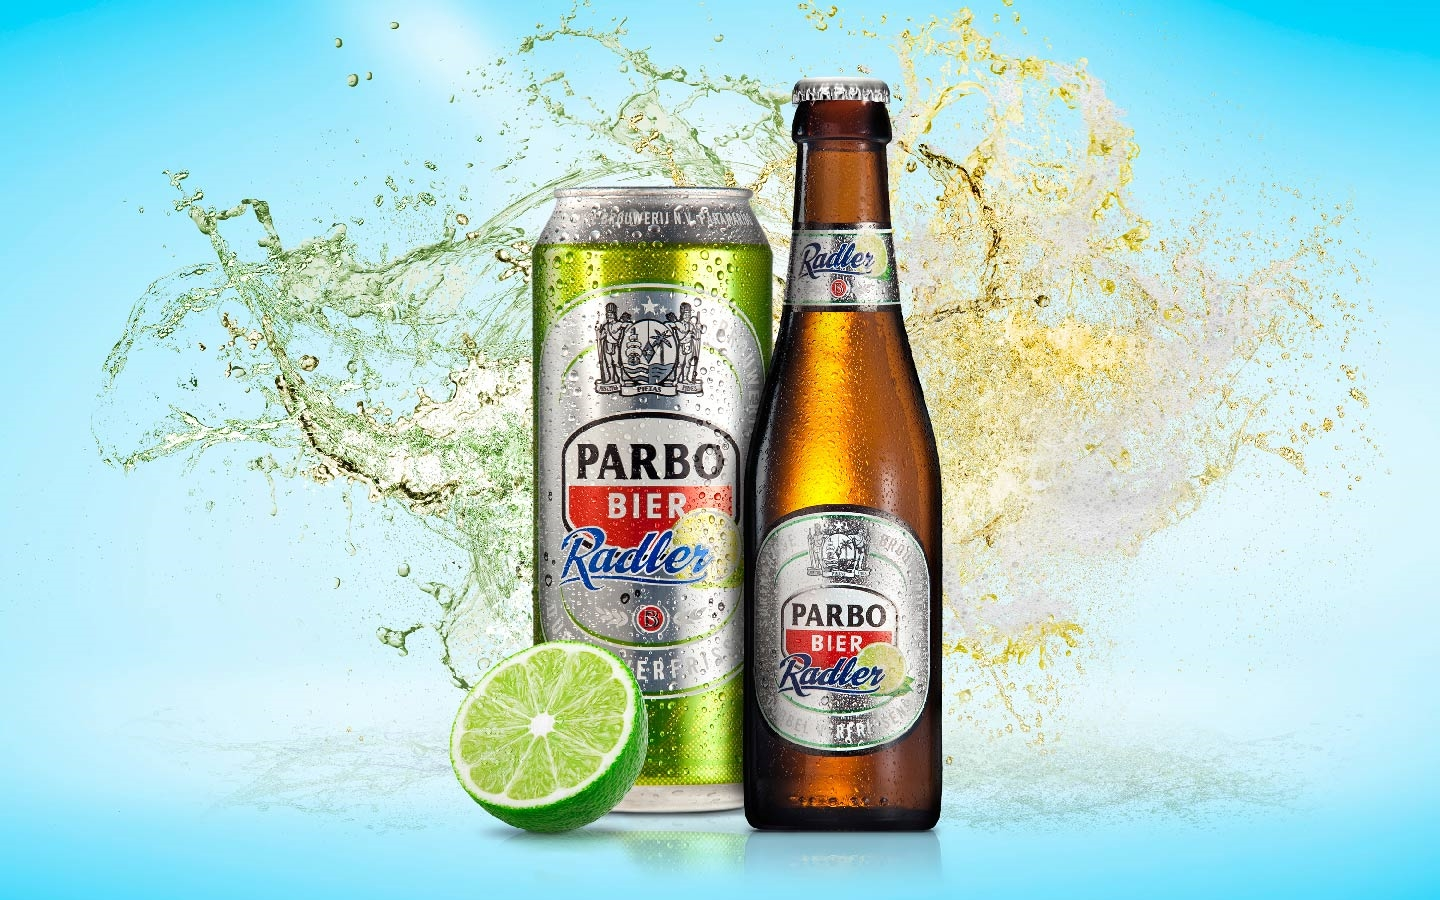 Parbo Radler Introductie